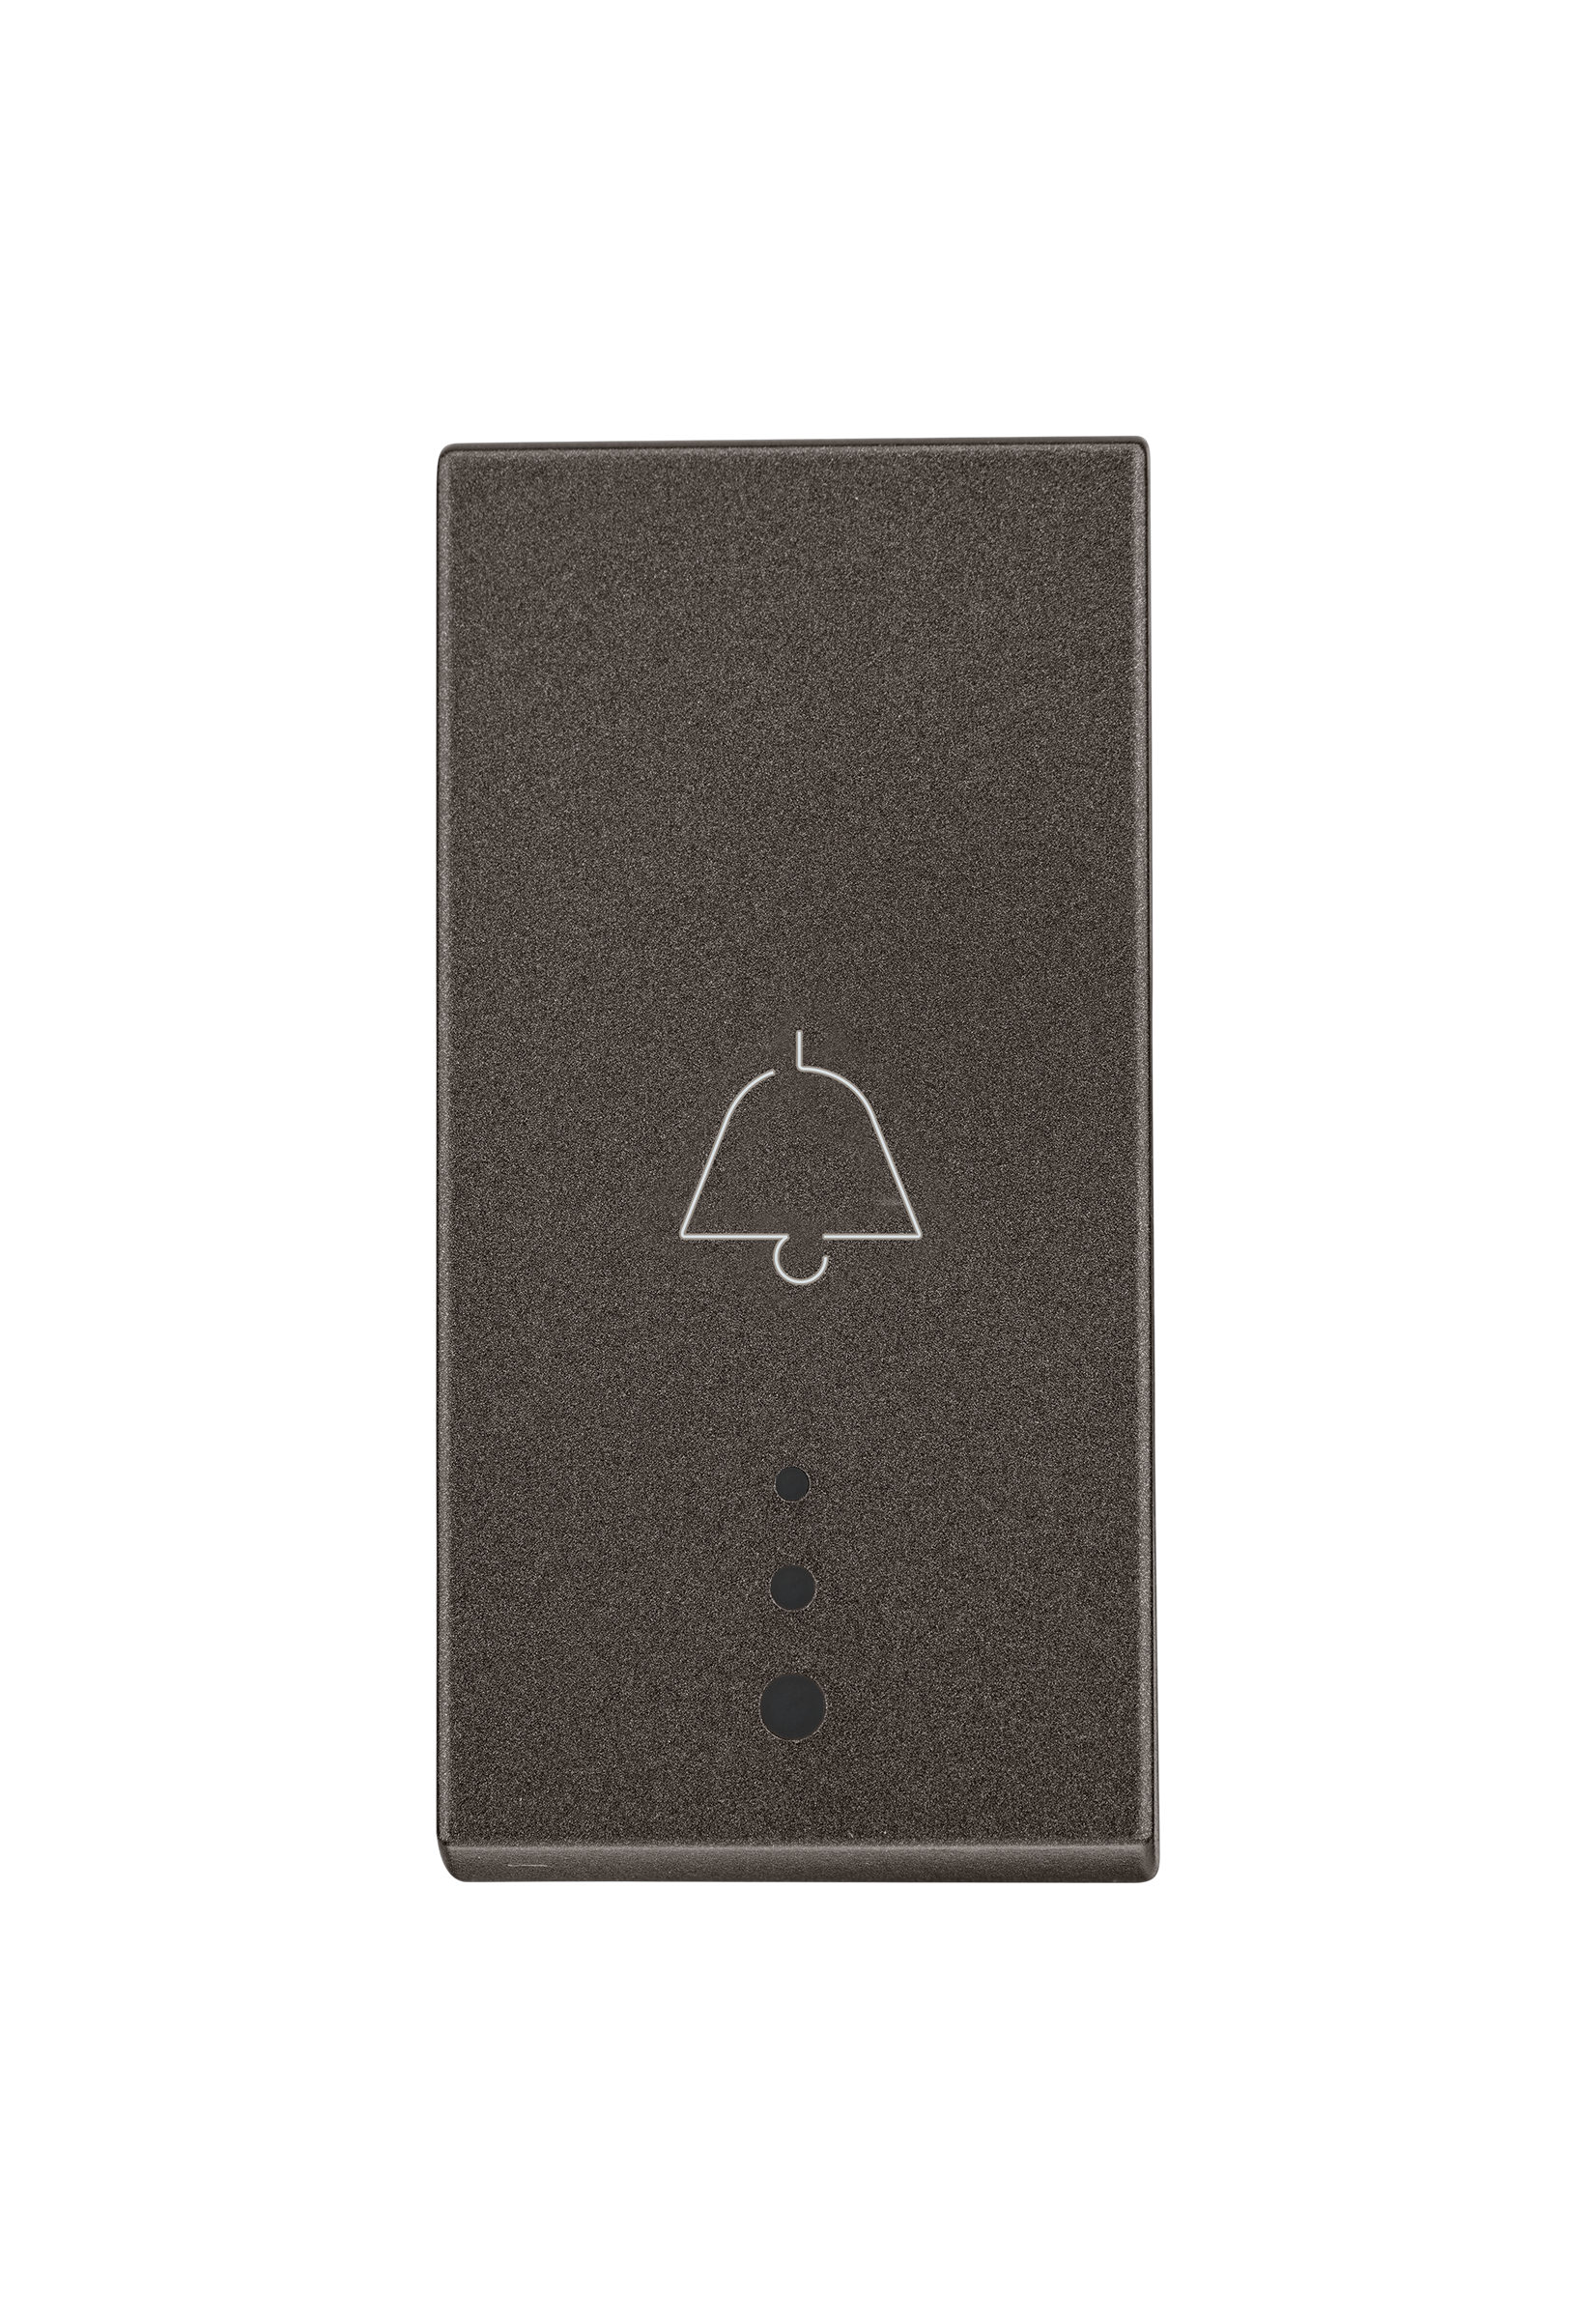 Myrius Nextgen 6A Bell Push1 Way 1M With Indicator Charcoal Grey